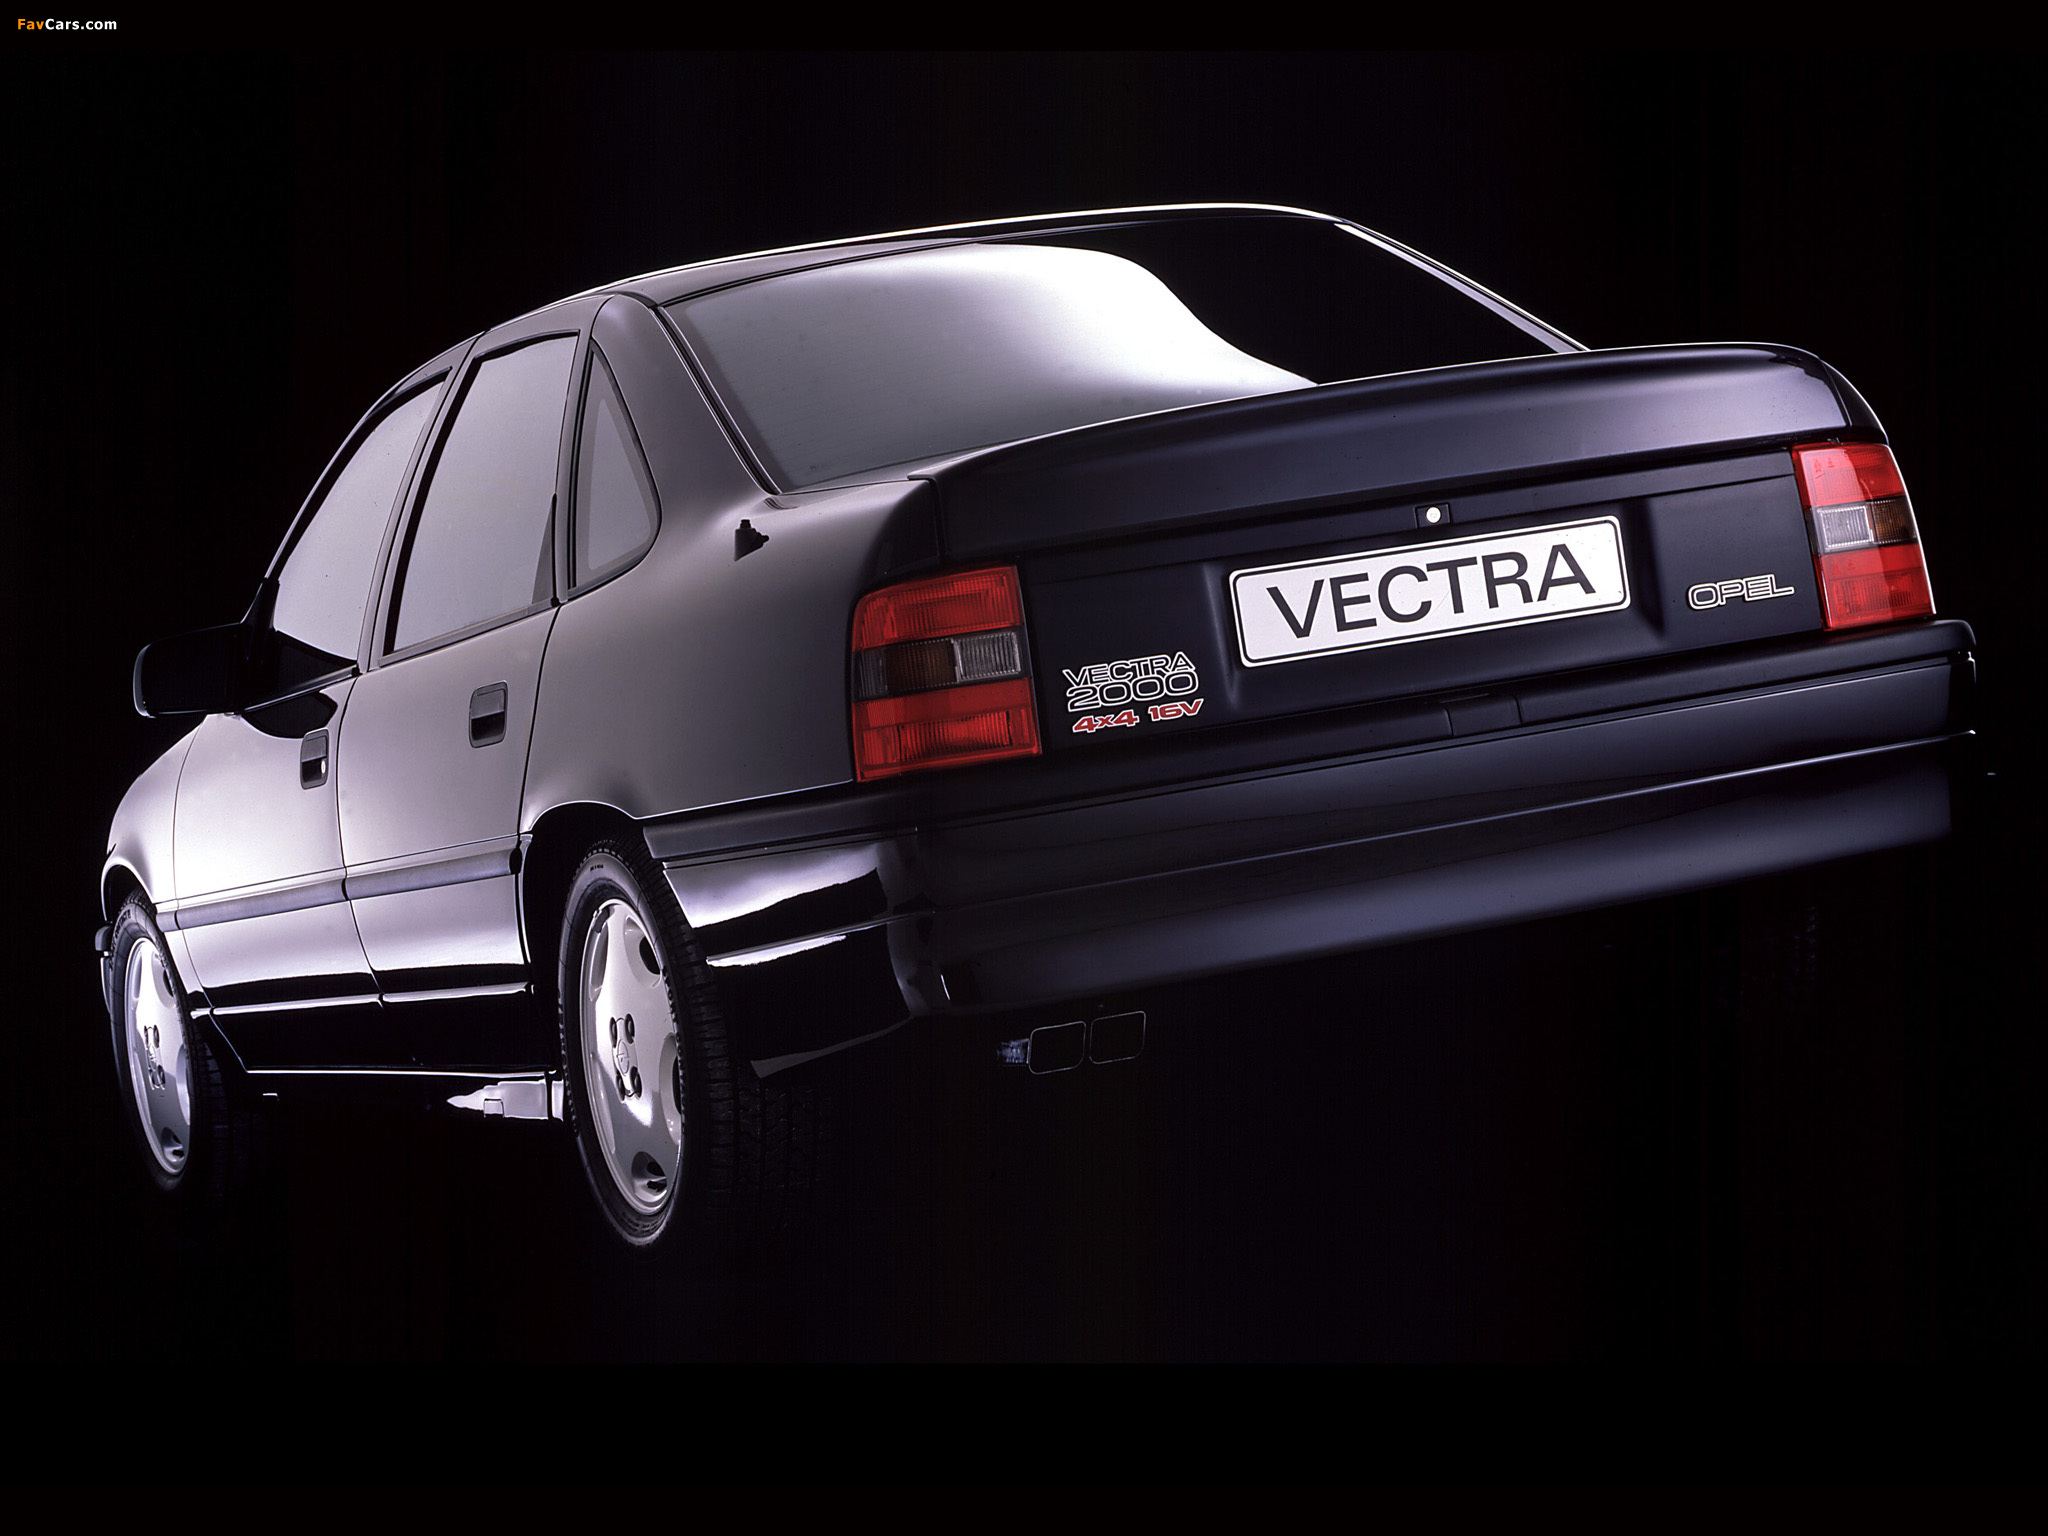 images of opel vectra 2000 a 1989 92 2048x1536. Black Bedroom Furniture Sets. Home Design Ideas